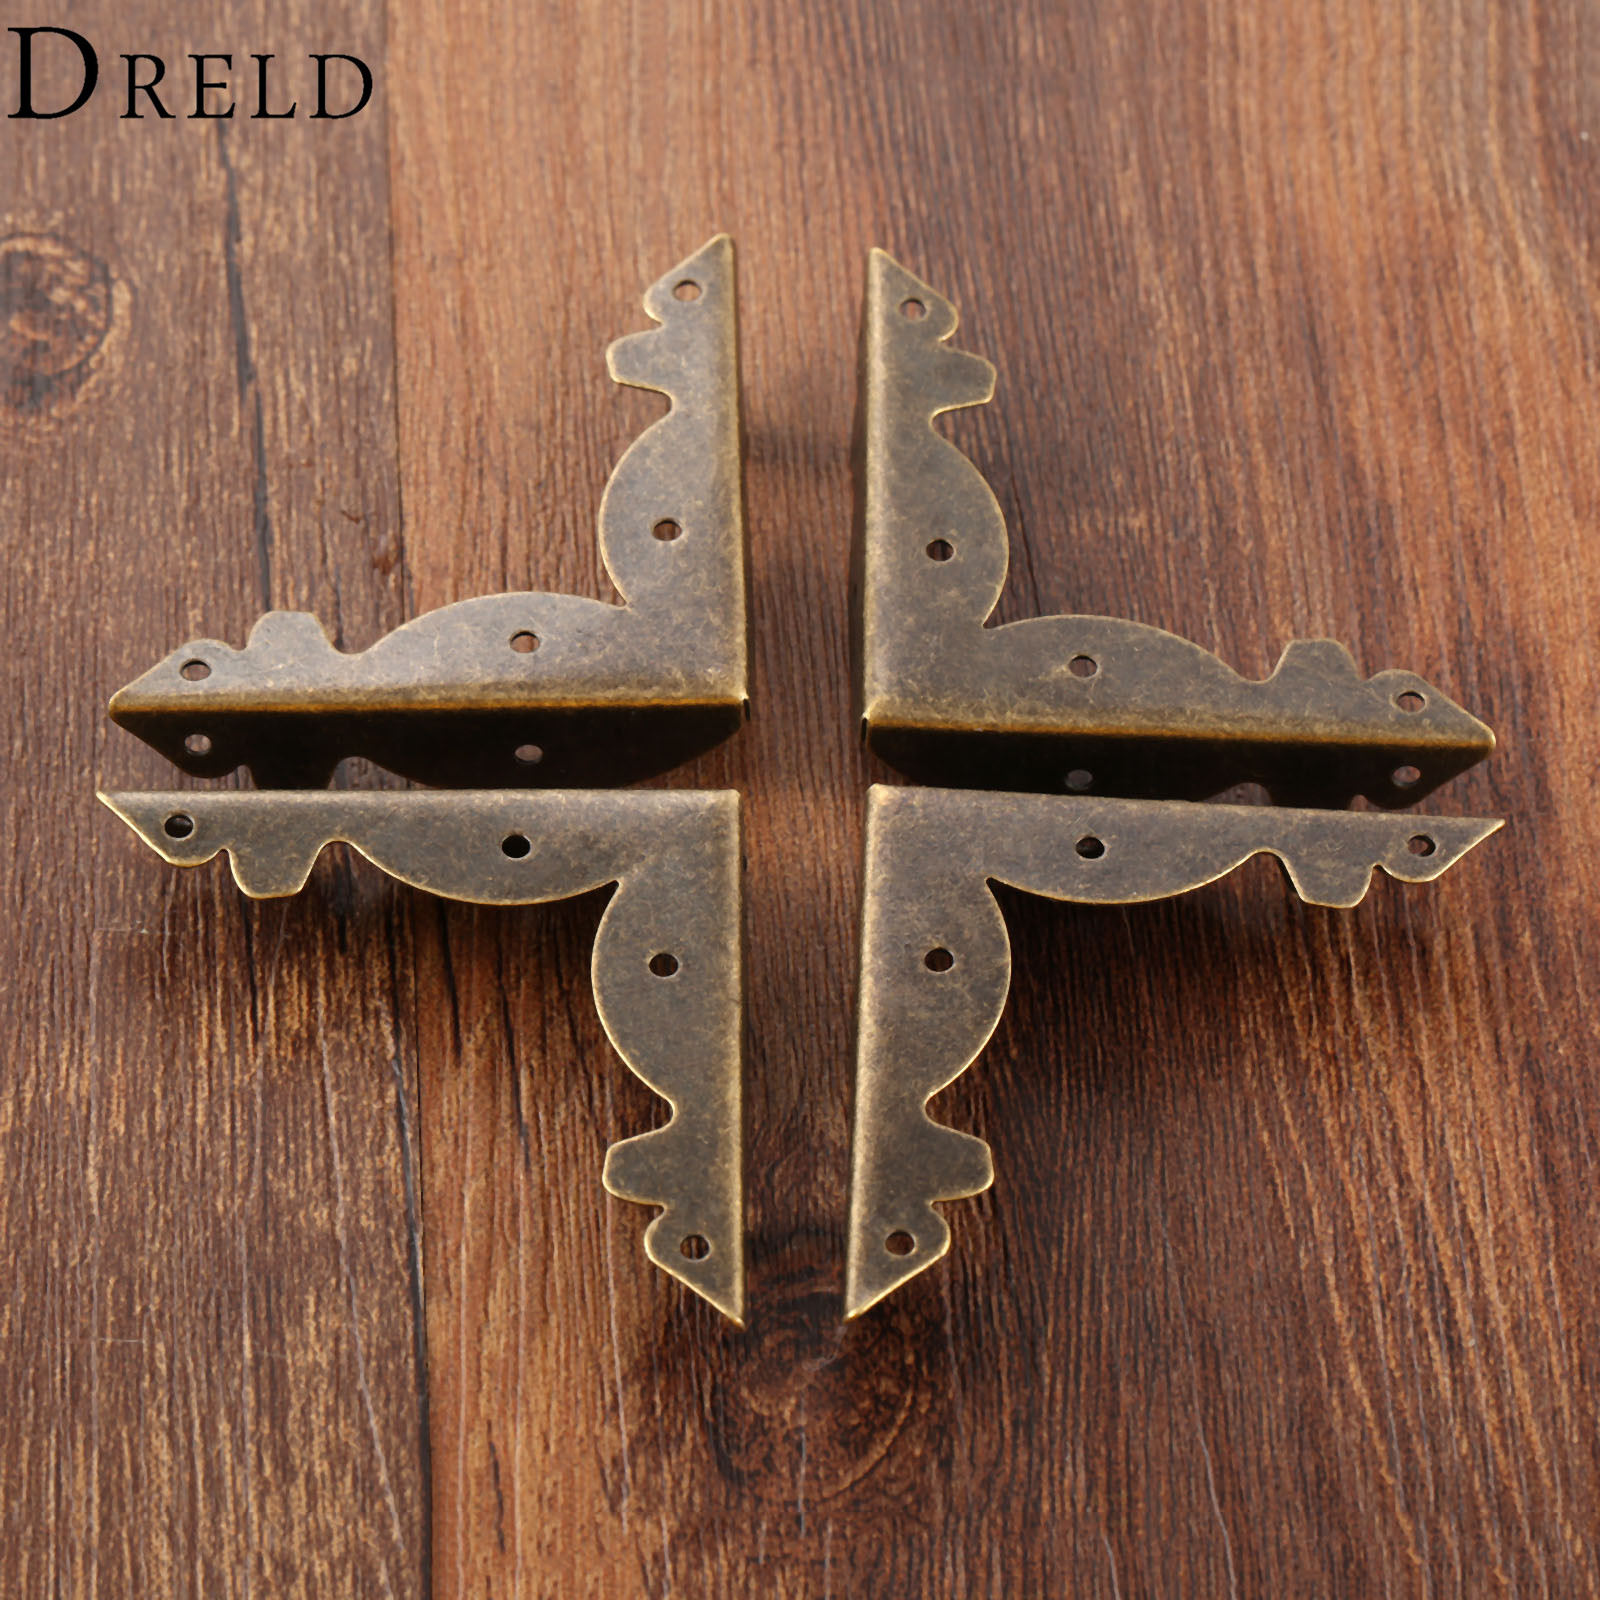 DRELD 4Pcs 36mm Antique Bronze Wood Box Feet Leg Corner Protector Guard Metal Crafts Decorative Bracket For Furniture Hardware 4pcs naierdi antique corner protector bronze jewelry chest box wooden case decorative feet leg metal corner bracket hardware